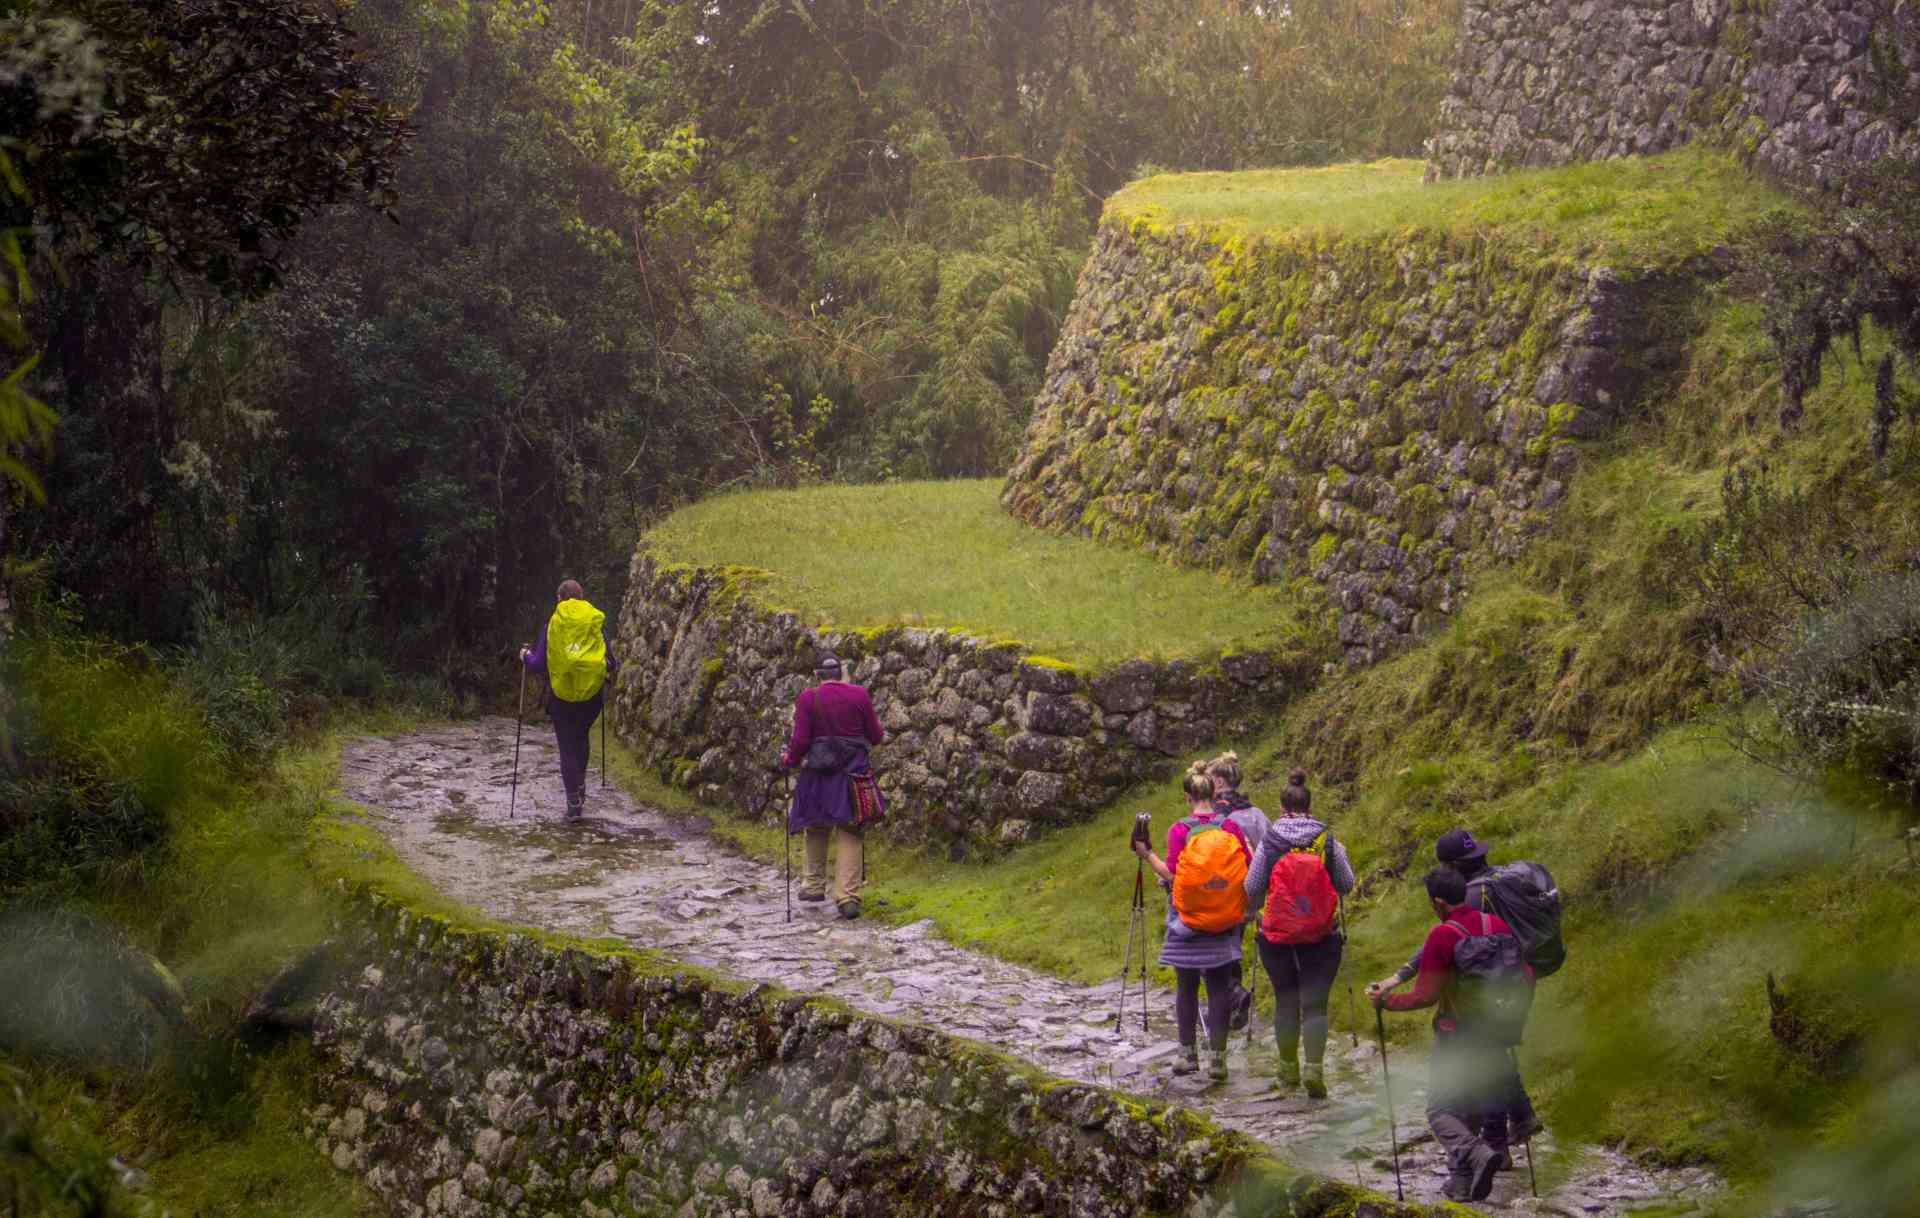 Trekking the Inca Trail, Machu Picchu by Erick Baca